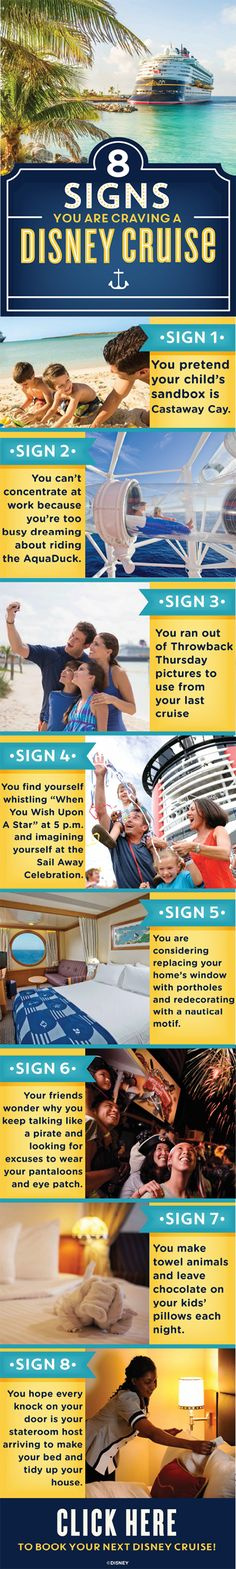 Think it's time for another Disney Cruise? Check out these eight signs you might be craving one.